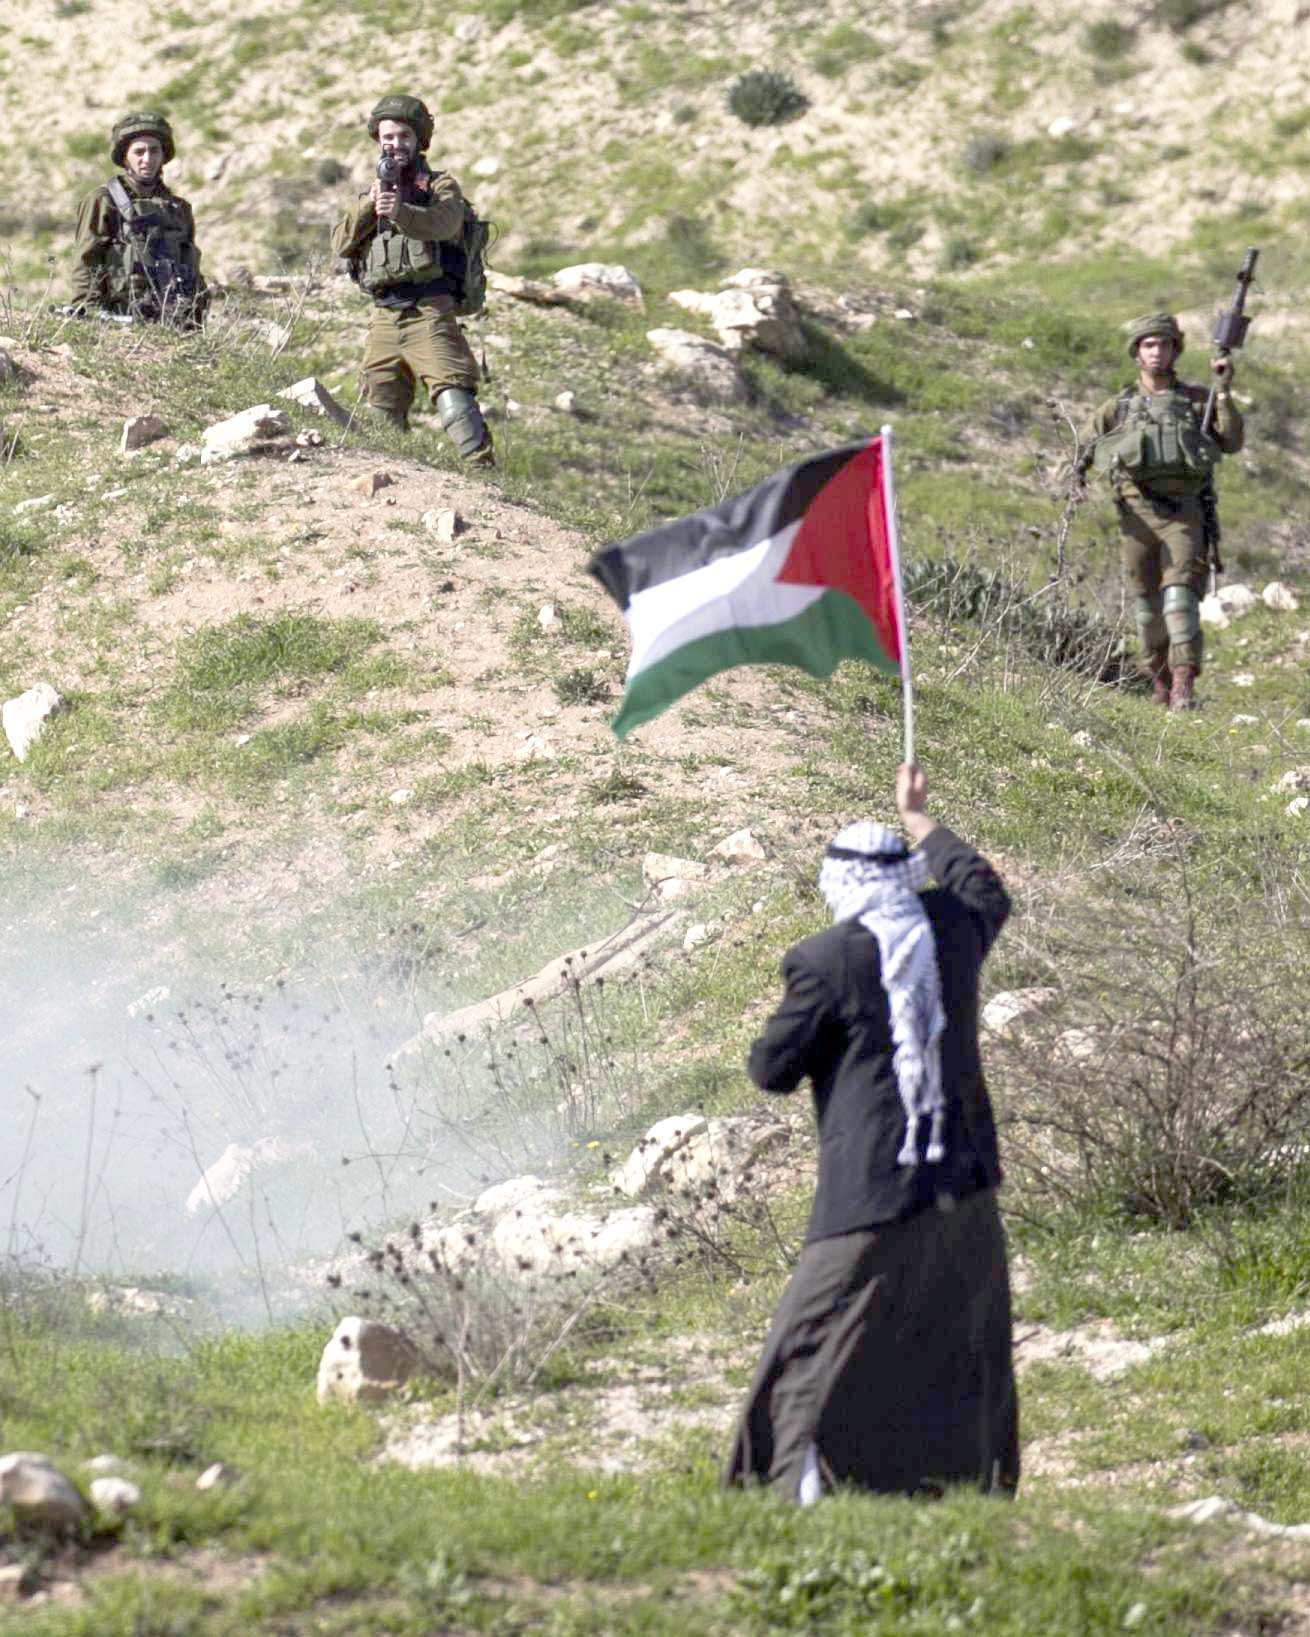 Mightier than the sword. A protester waves a Palestinian flag in front of Israeli soldiers during clashes near the Hawara checkpoint in the West Bank, on February 2. (AFP)